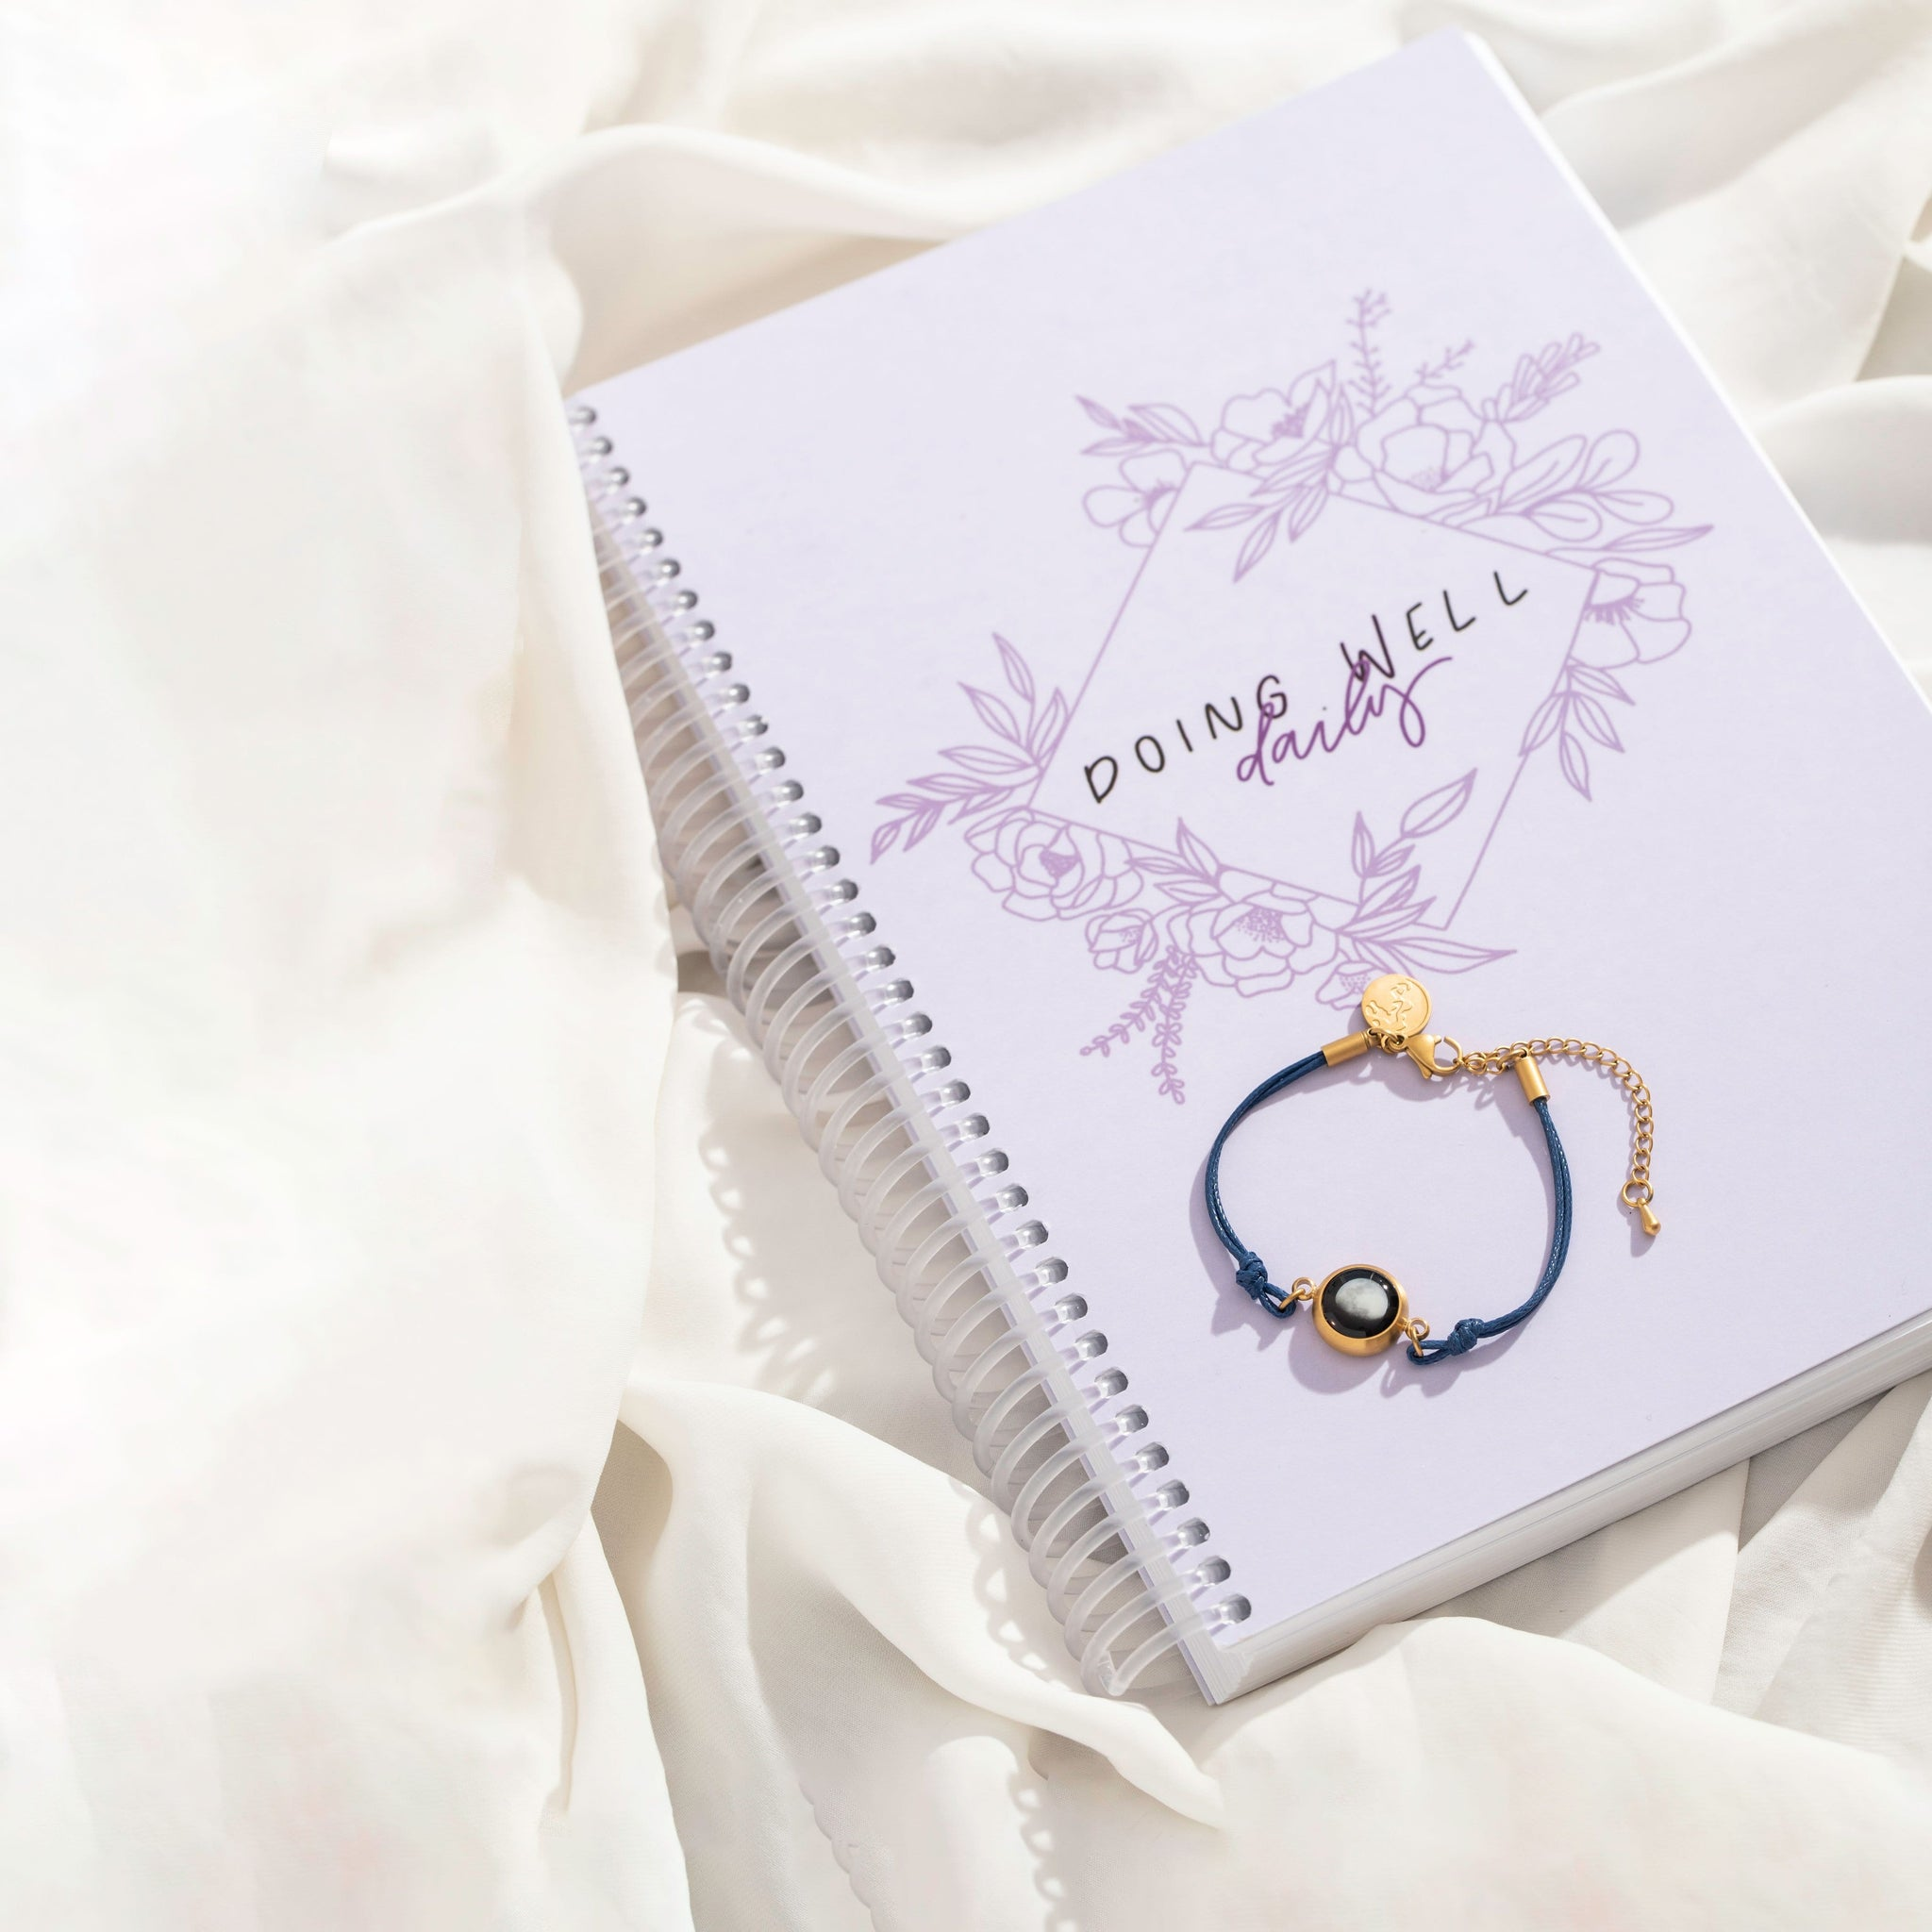 Doing Well Daybook and Positive Energy Moon Bracelet in Night Blue Bundle